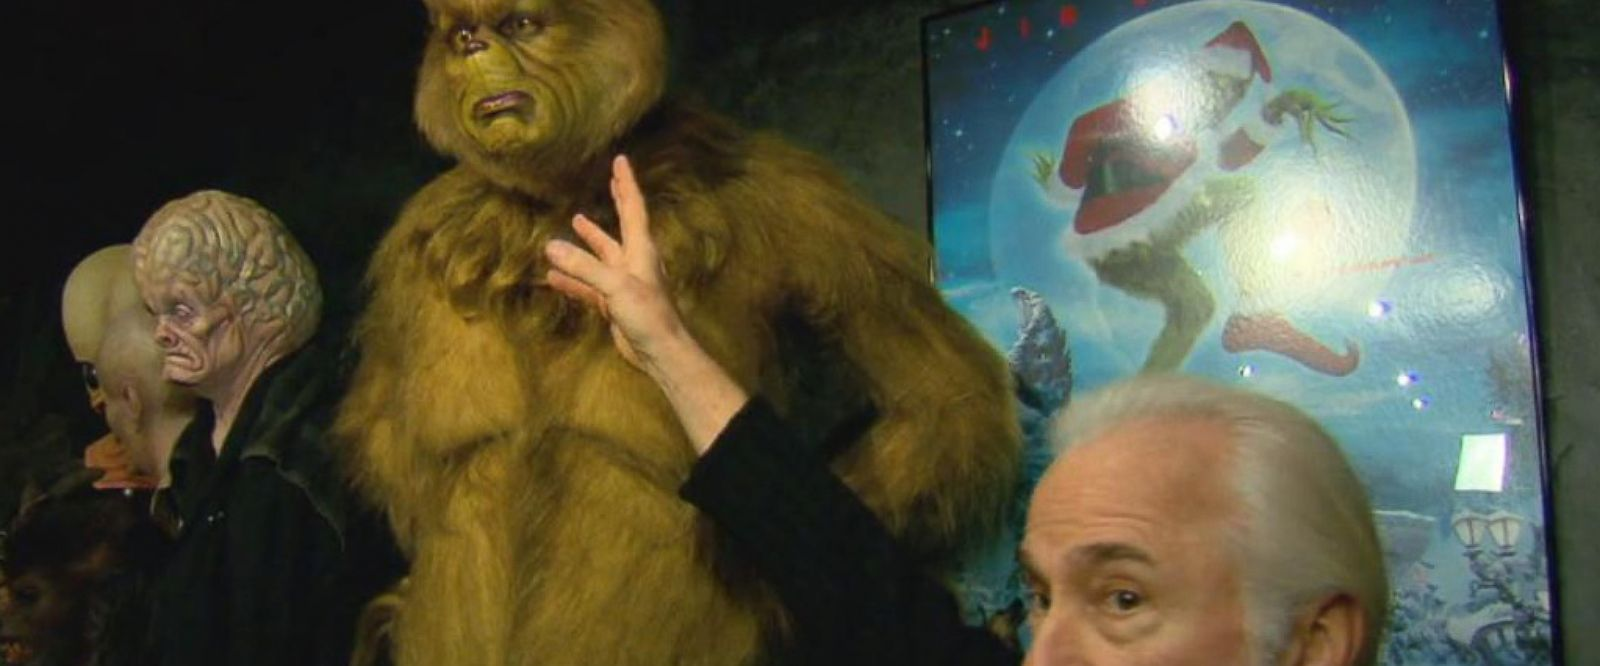 VIDEO: Why Jim Carrey almost quit 'Dr. Seuss' How the Grinch Stole Christmas'